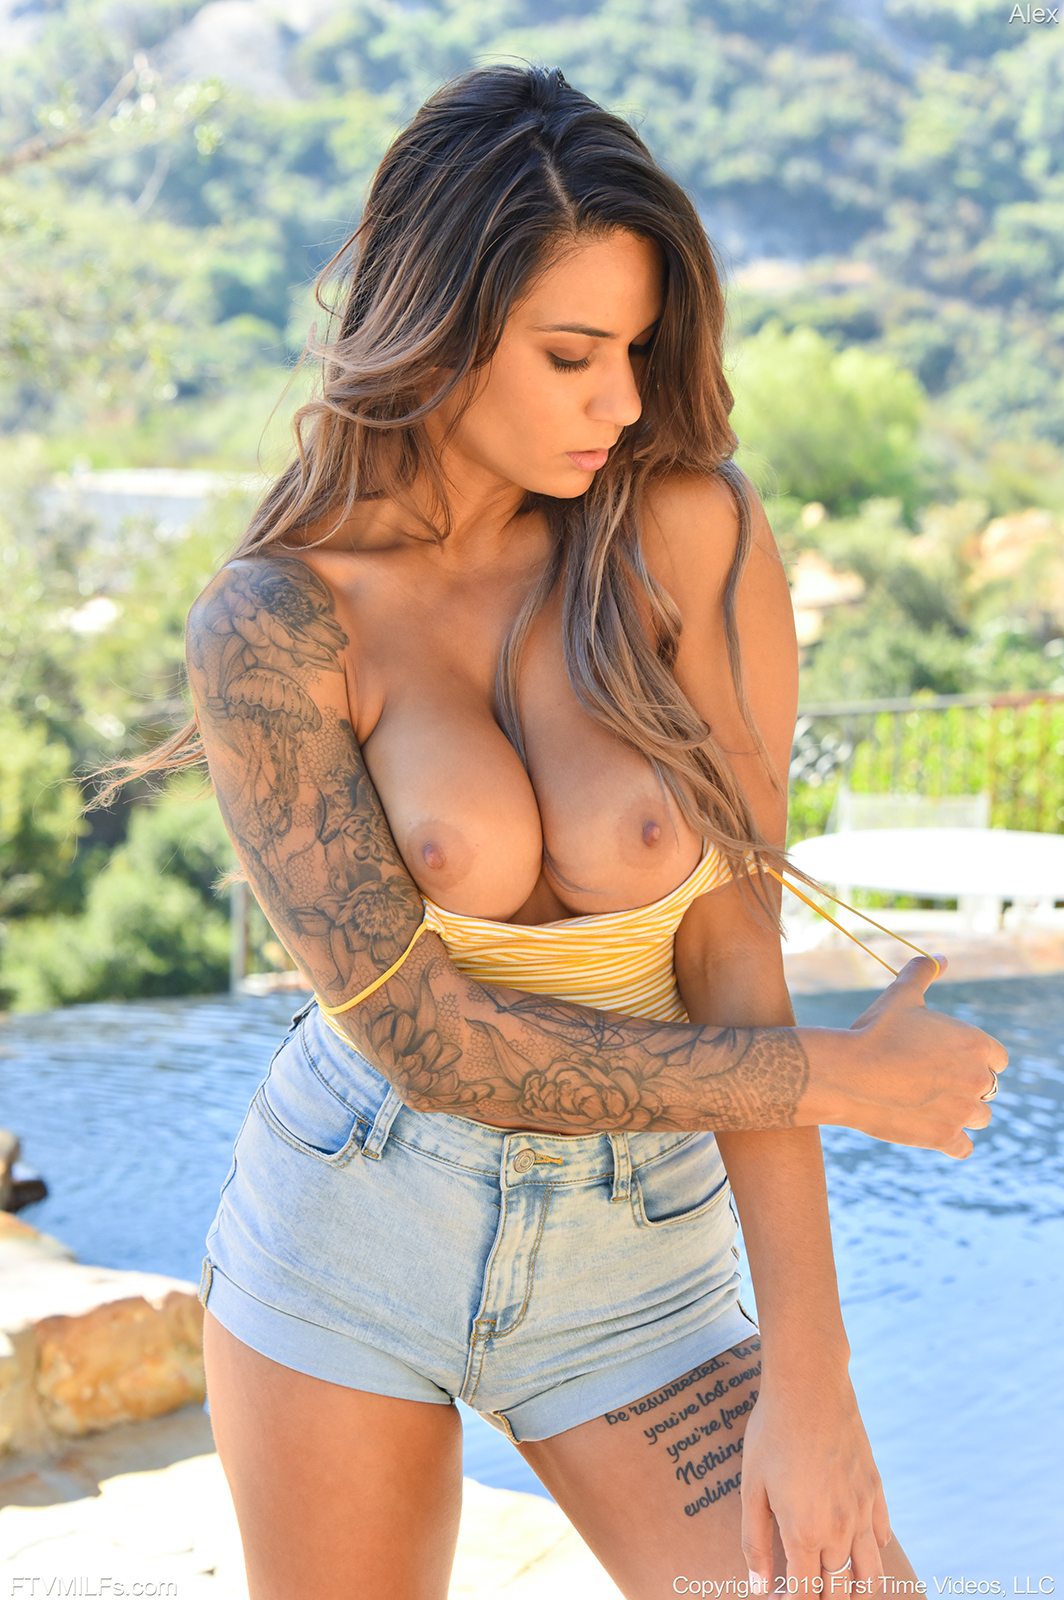 Tattooed Milf Alex Zara